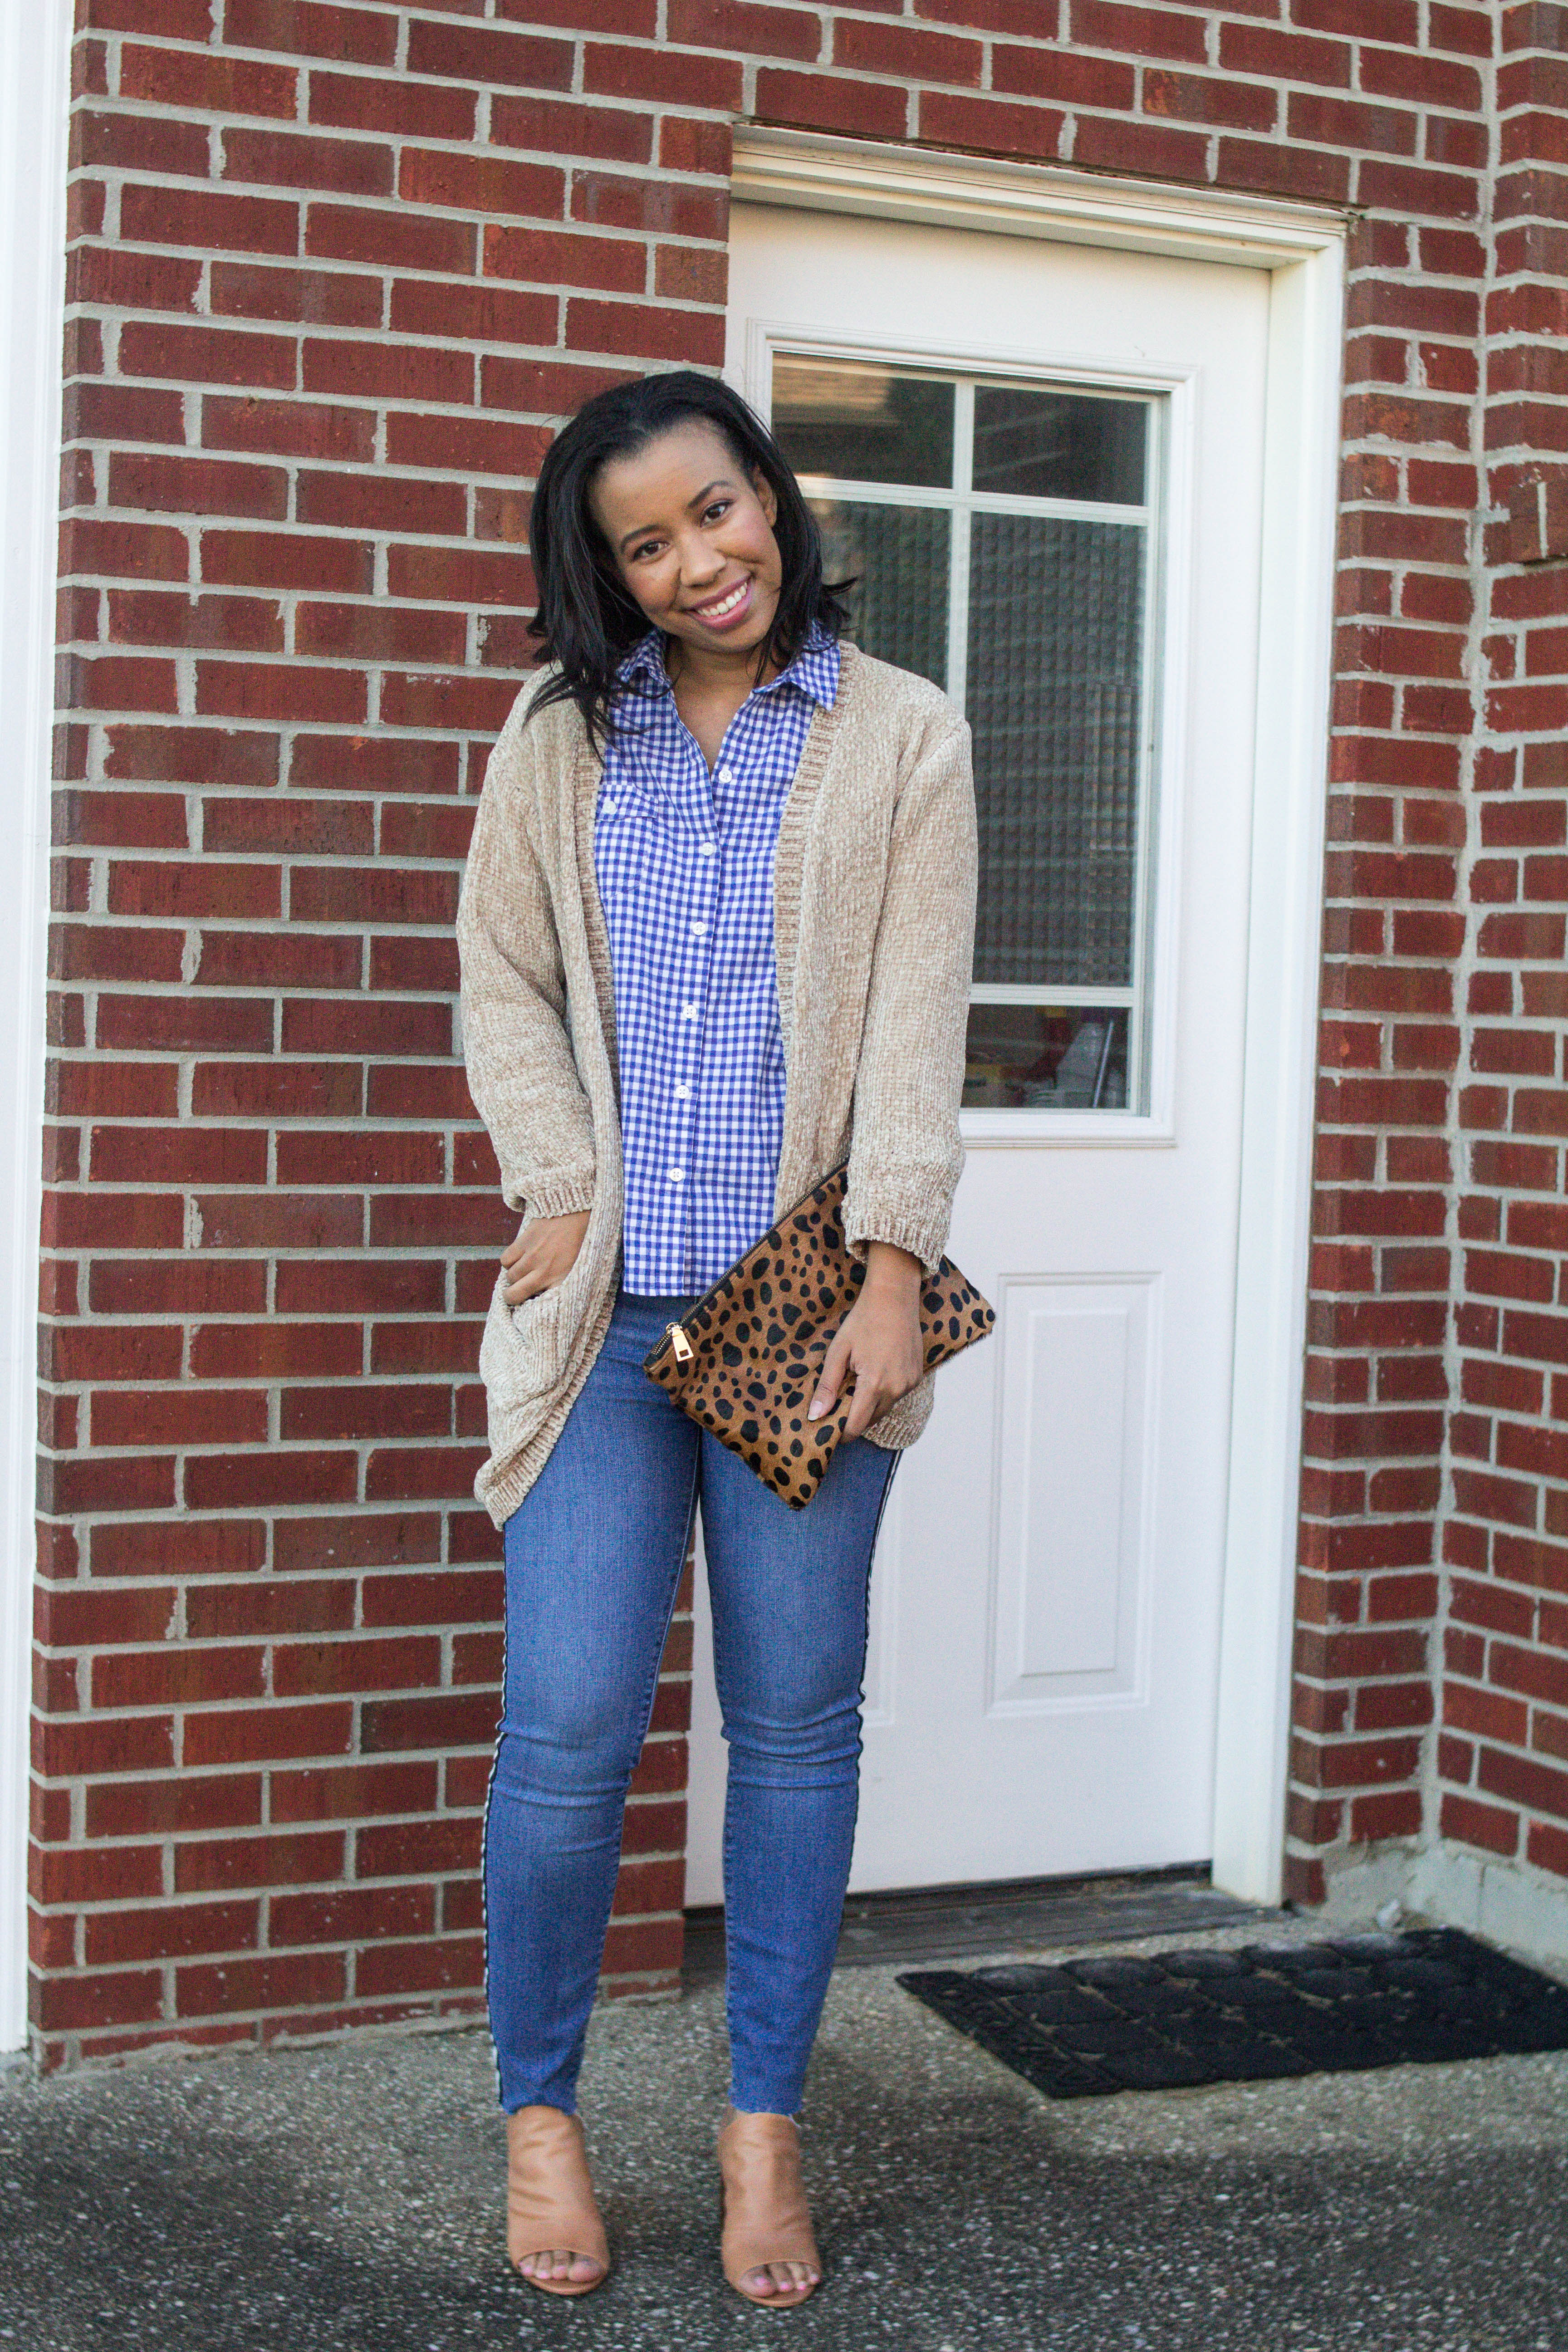 Louisville blogger, What Nicole Wore, shows how to take ten wardrobe staples and create twenty fall outfits with a fall capsule wardrobe. // gingham button down shirt outfit ideas, weekend outfits women, chenille sweater cardigan, gordmans outfit, loft outlet jeans, casual friday outfit idea